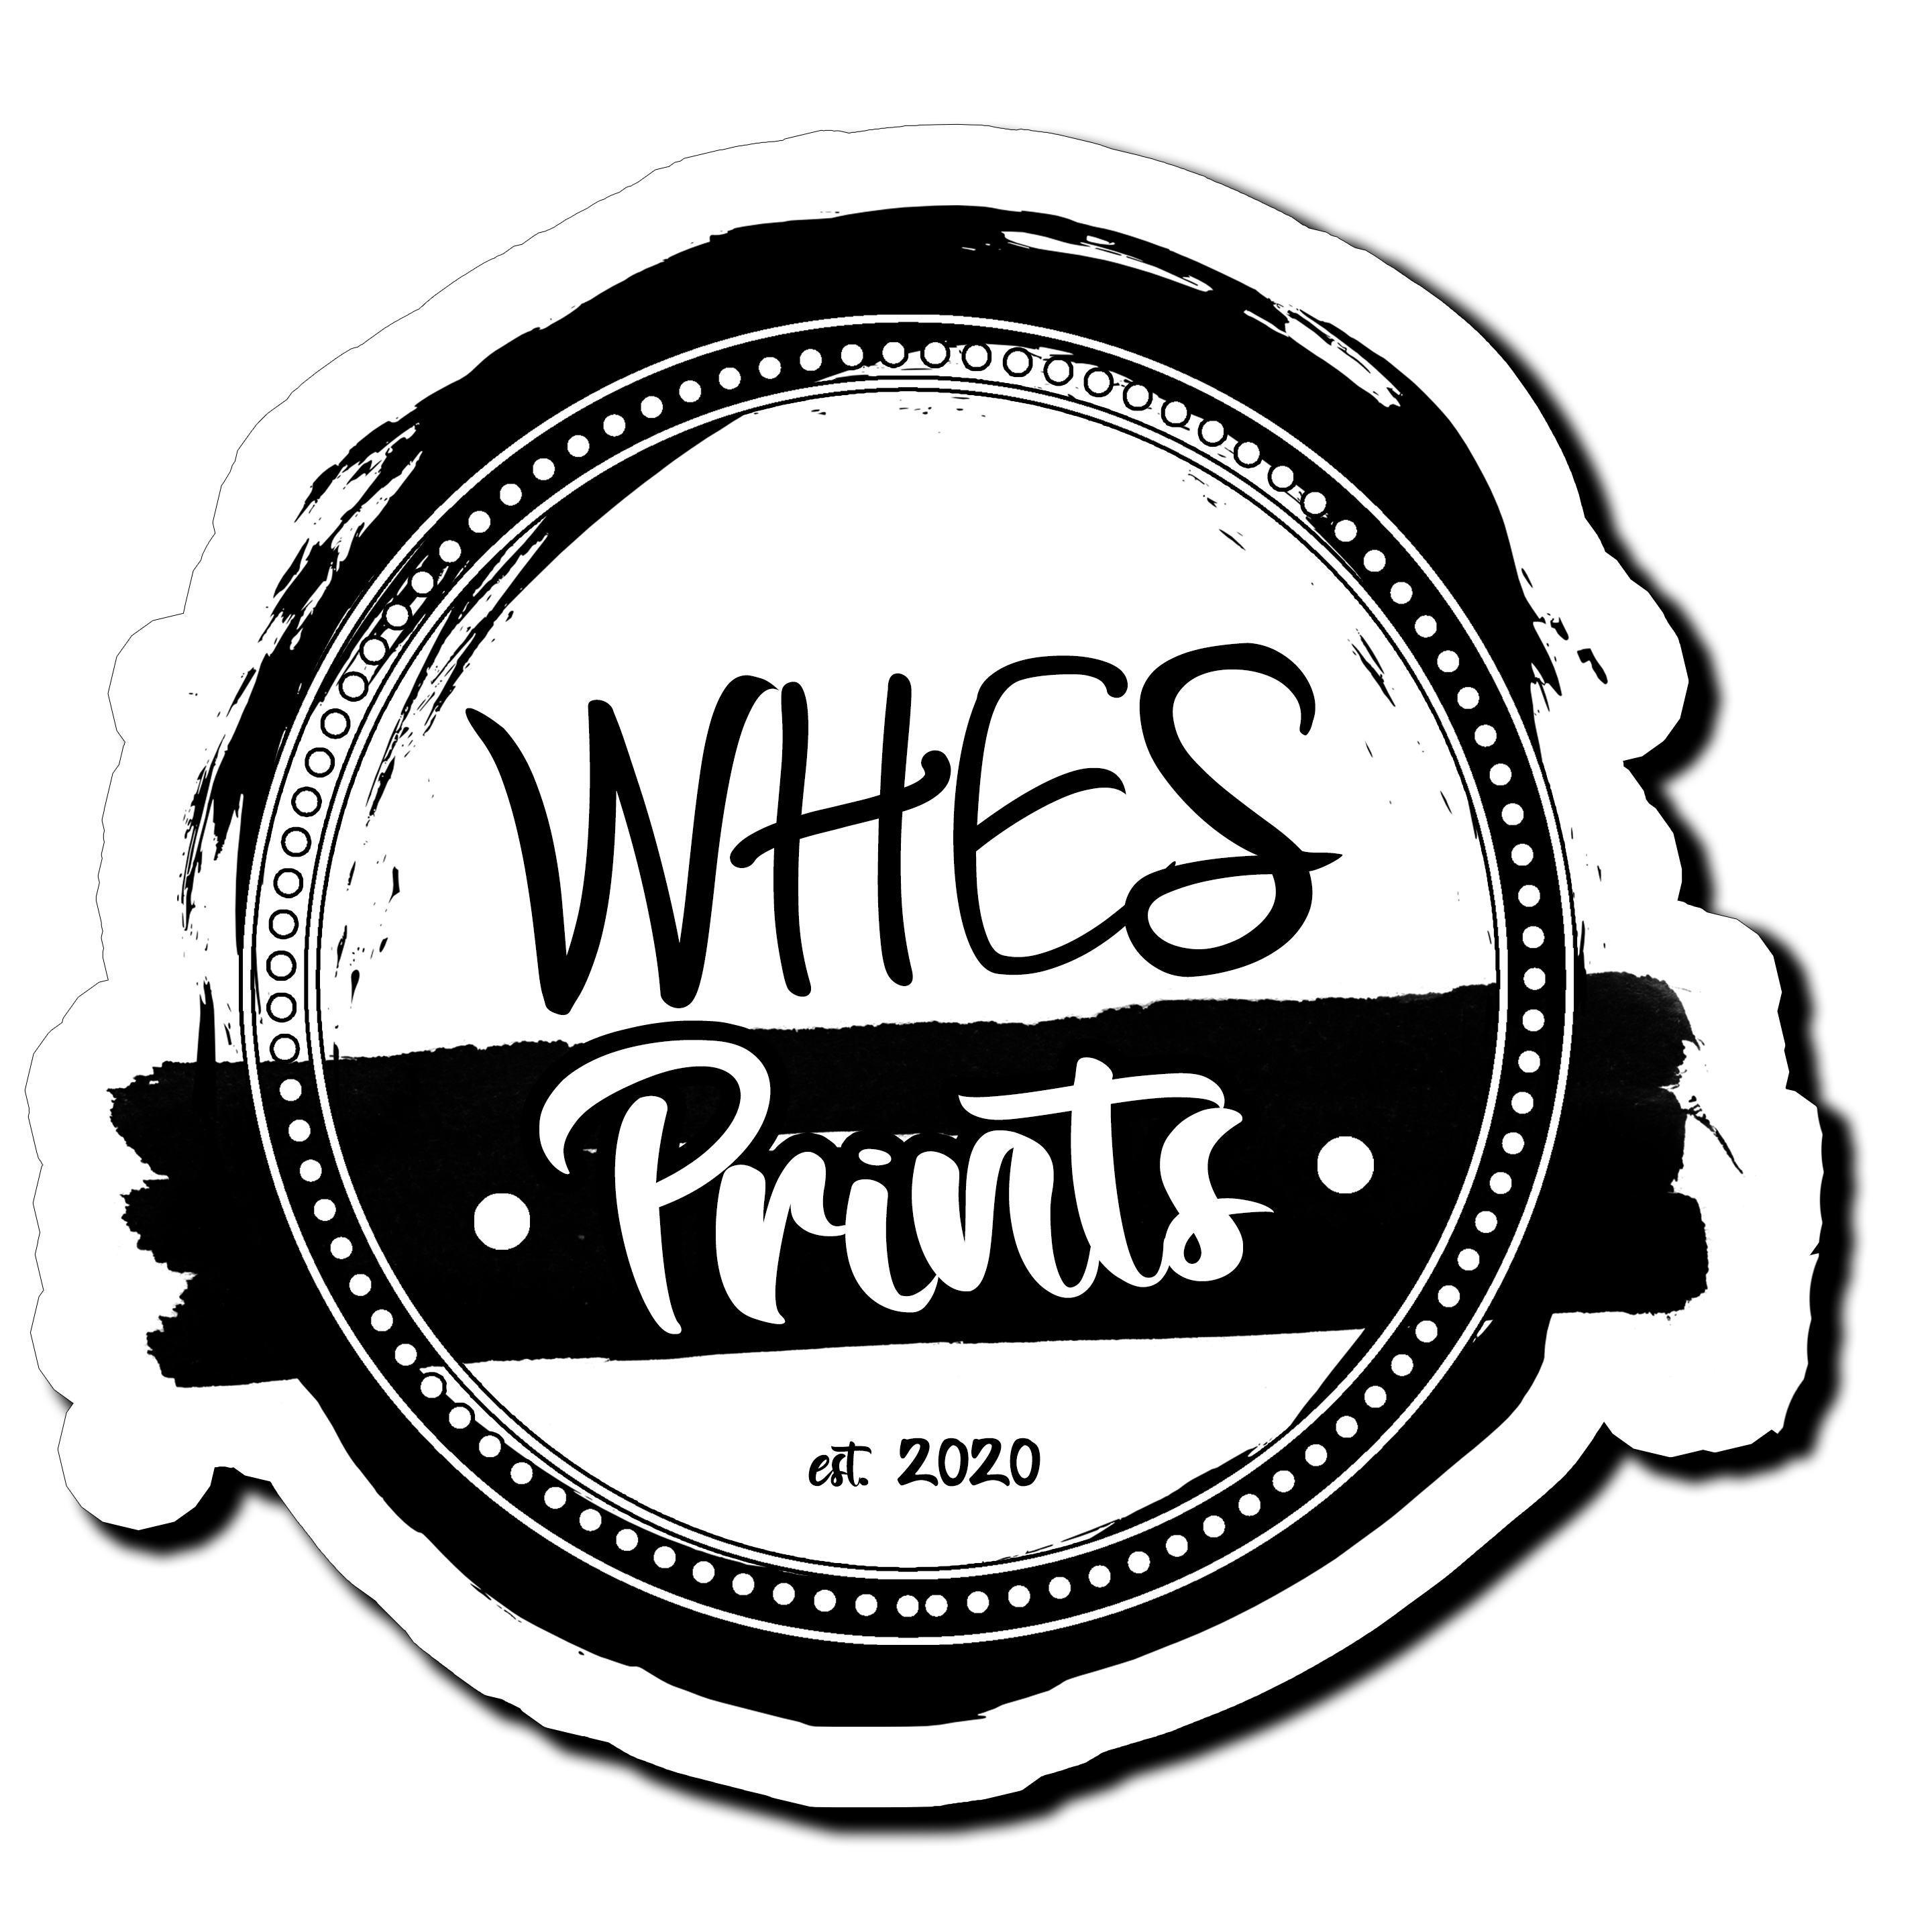 WHES Prints